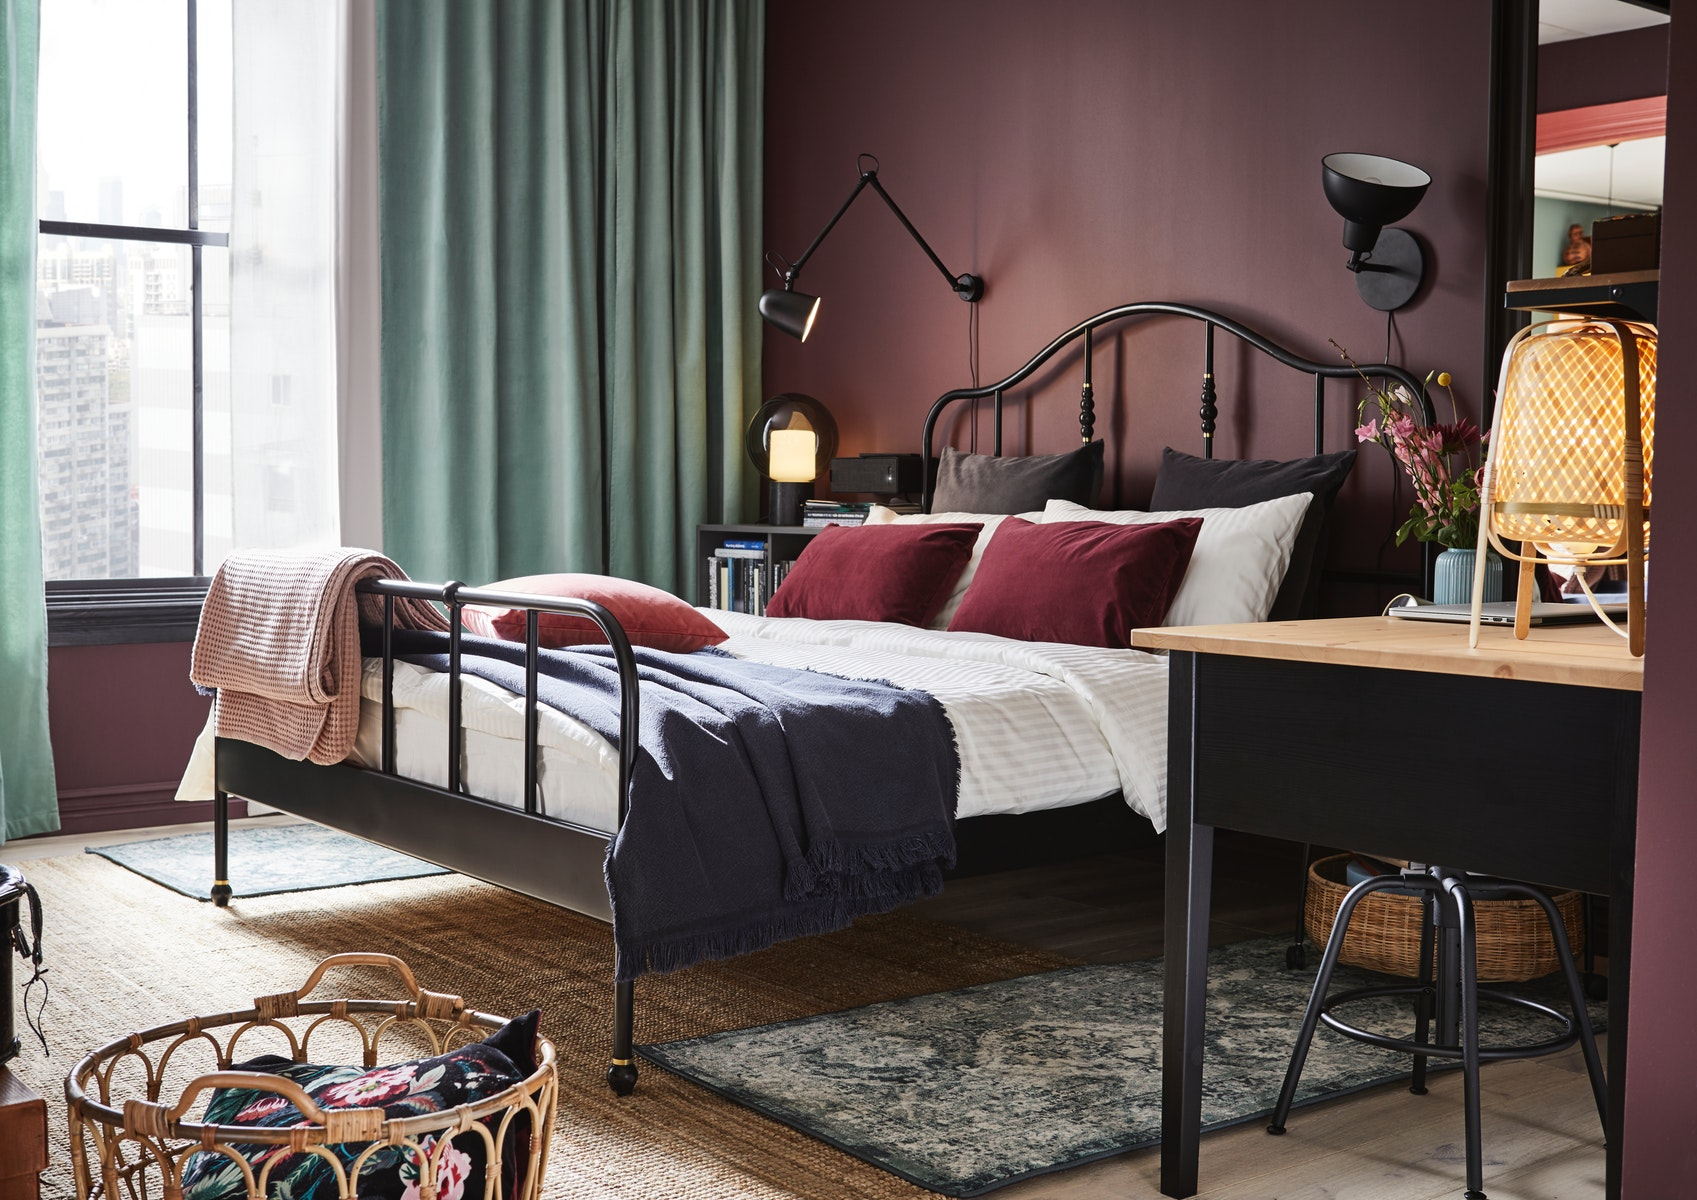 5 bed sizes you need to know